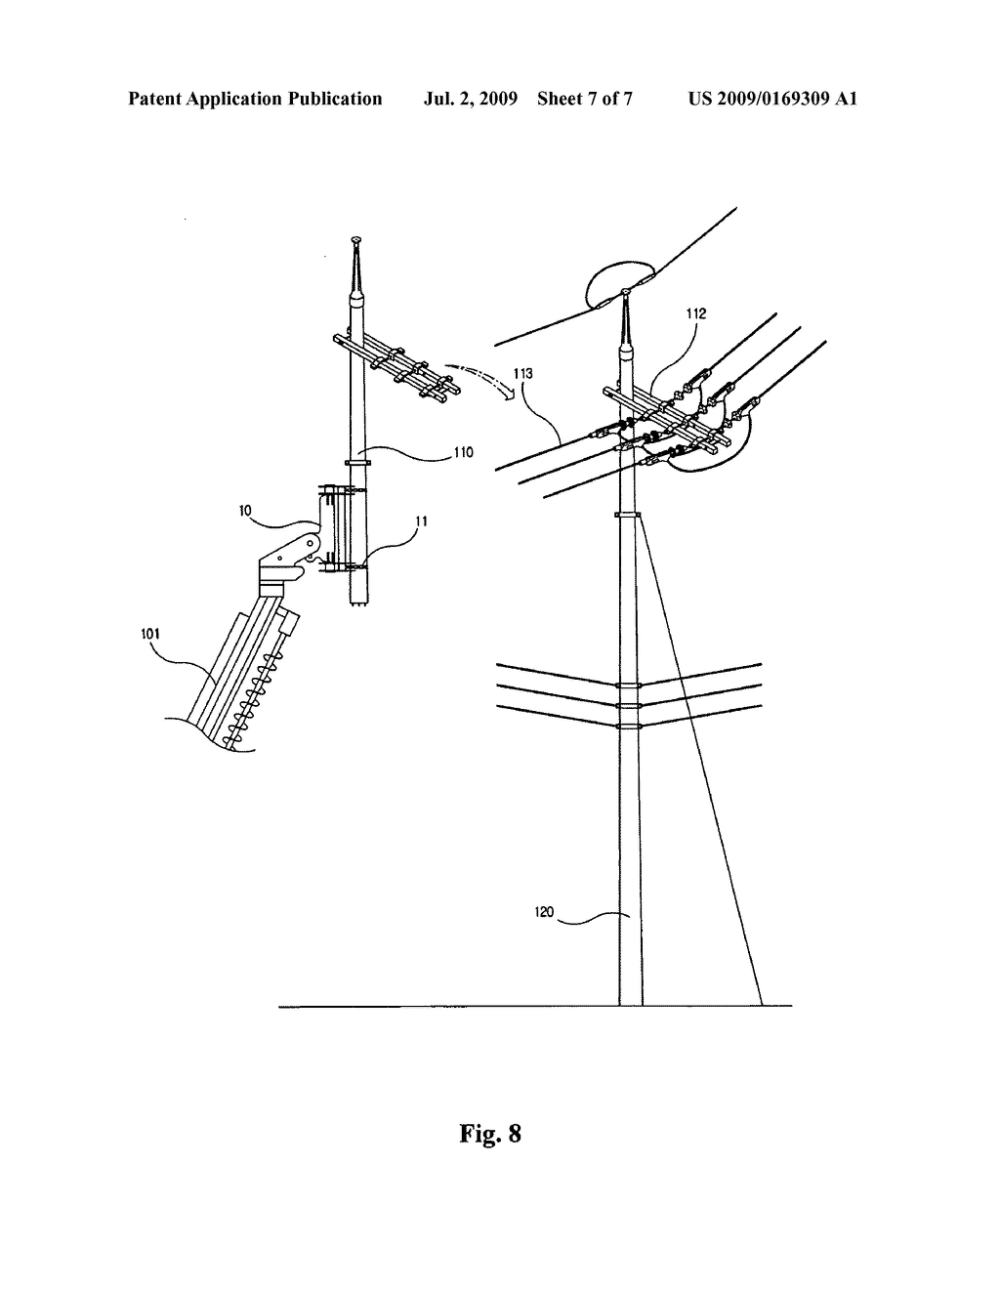 medium resolution of method for replacing concrete utility pole without interrupting power supply by adopting pole clamp and pole crusher diagram schematic and image 08